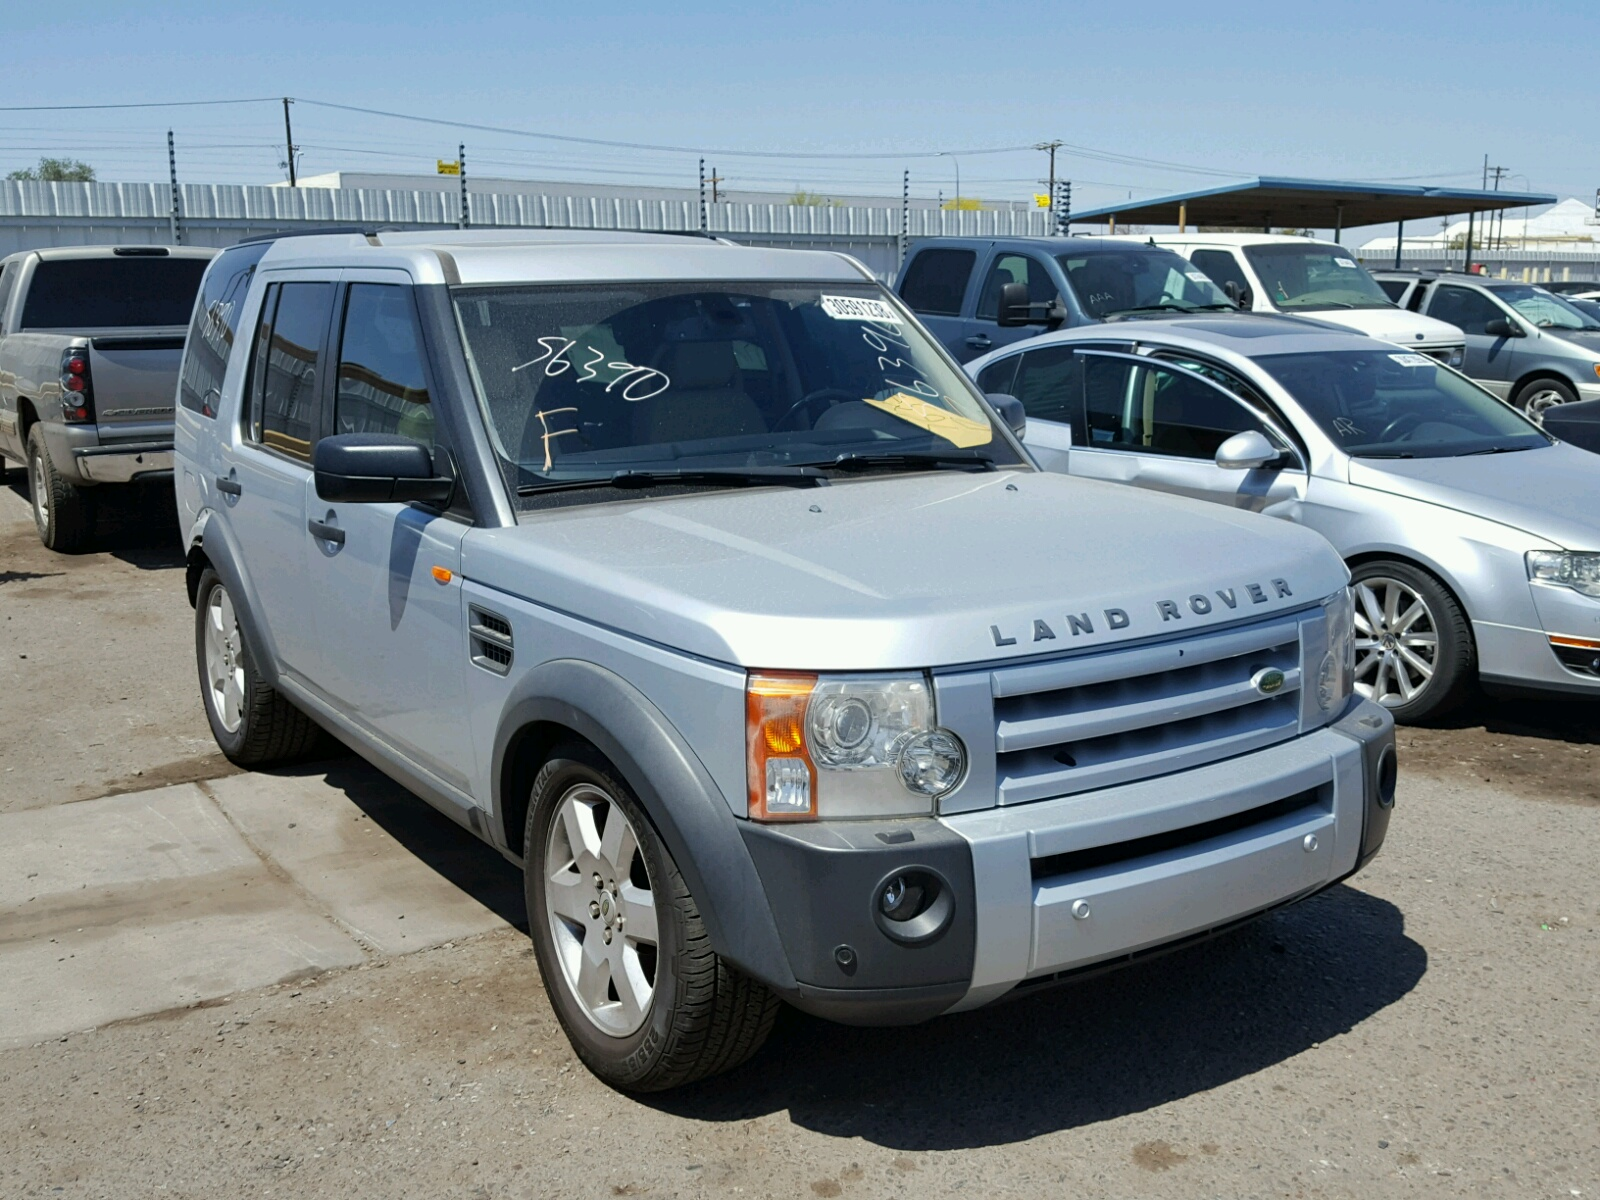 auction hse ca en auctions land on landrover junk hayward ended for sale rover vin receipt lot online carfinder copart auto